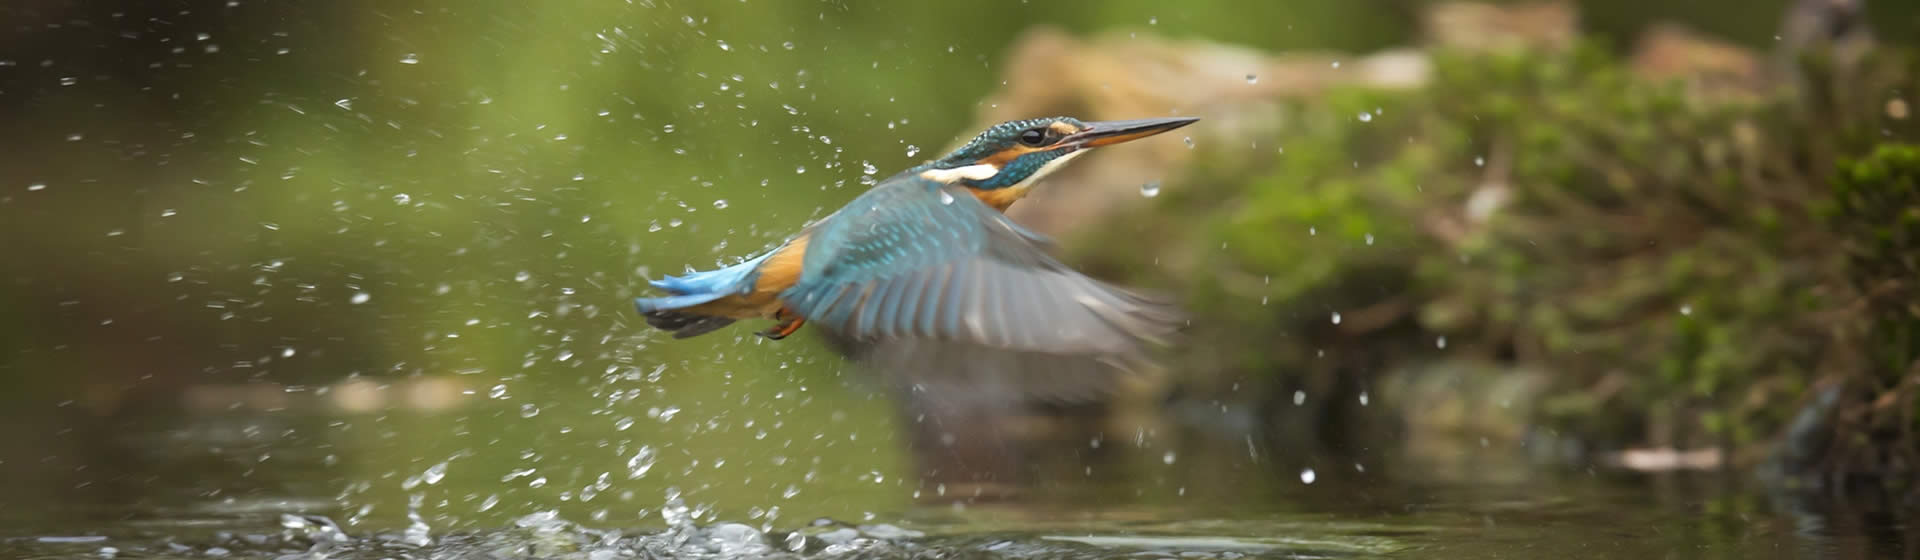 kingfisher in natural environment